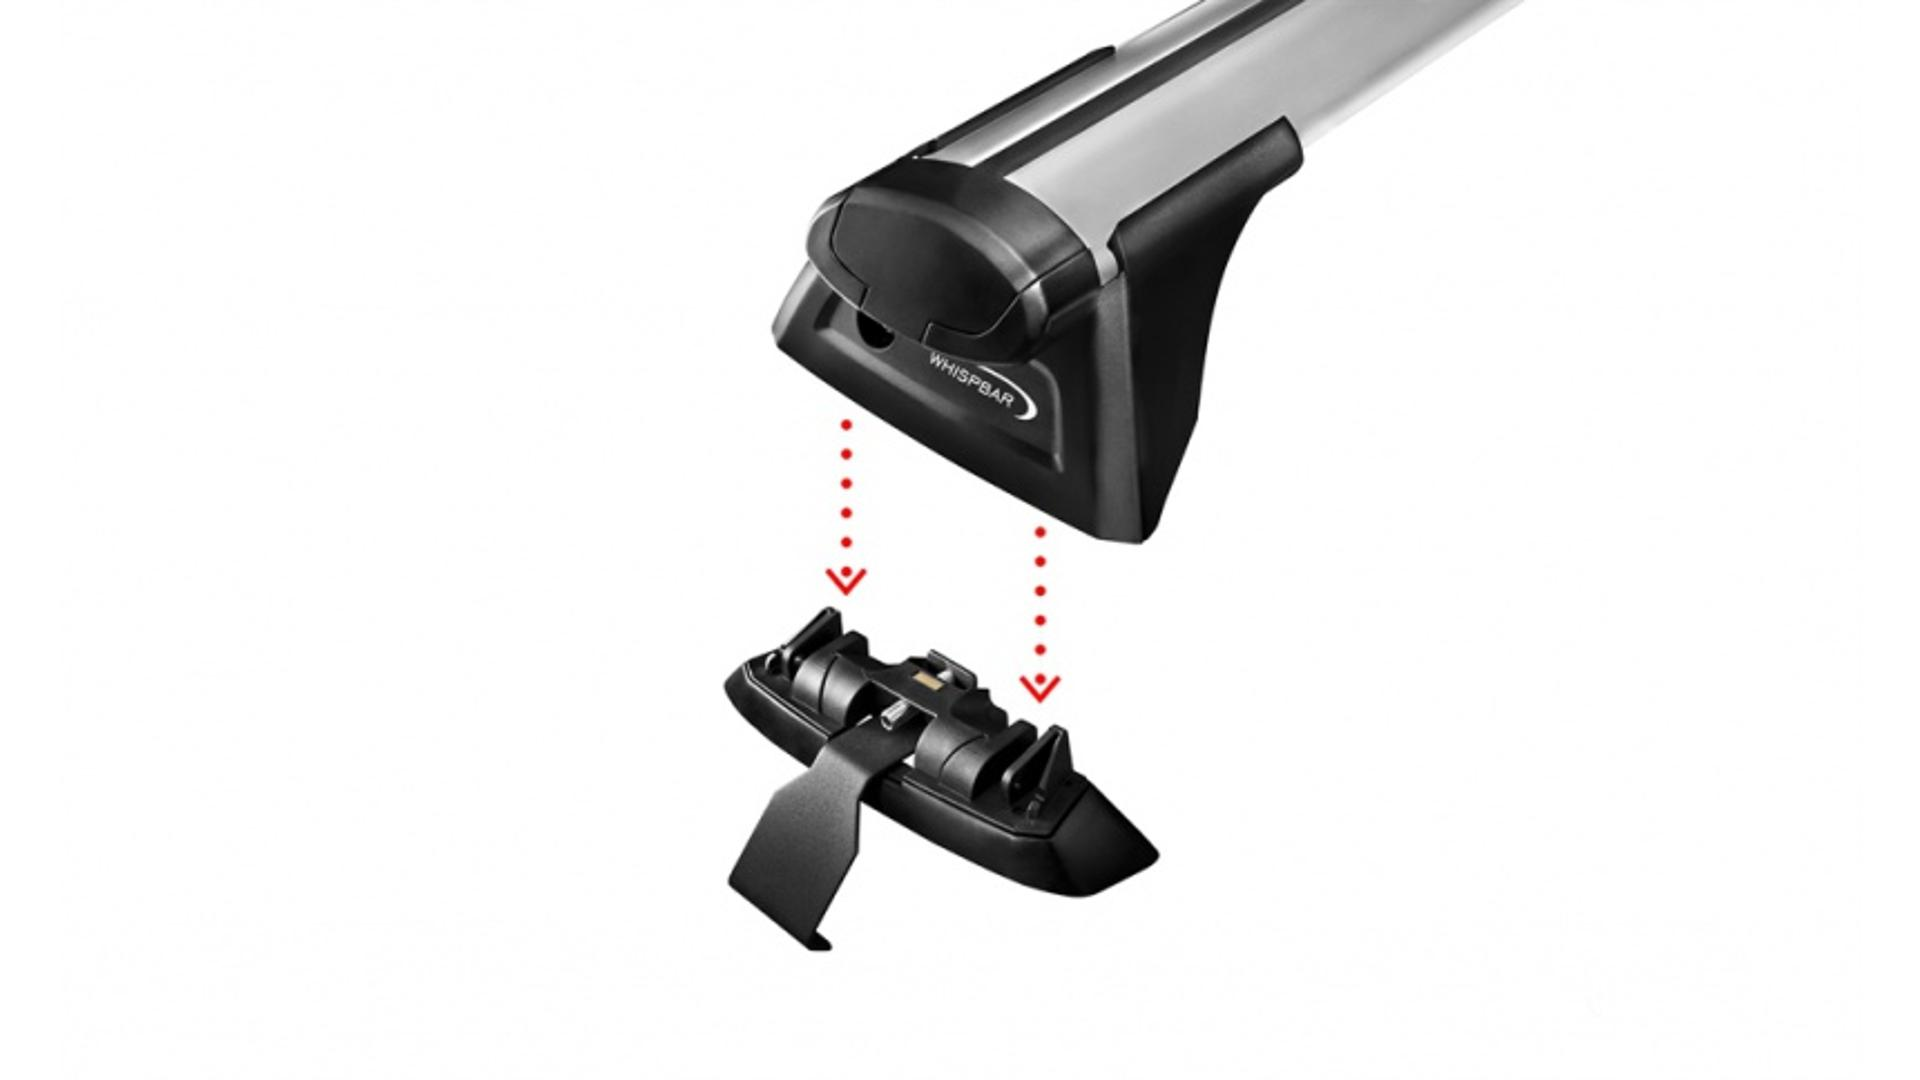 Whispbar montážní sada - Clamp Mount - K1083W